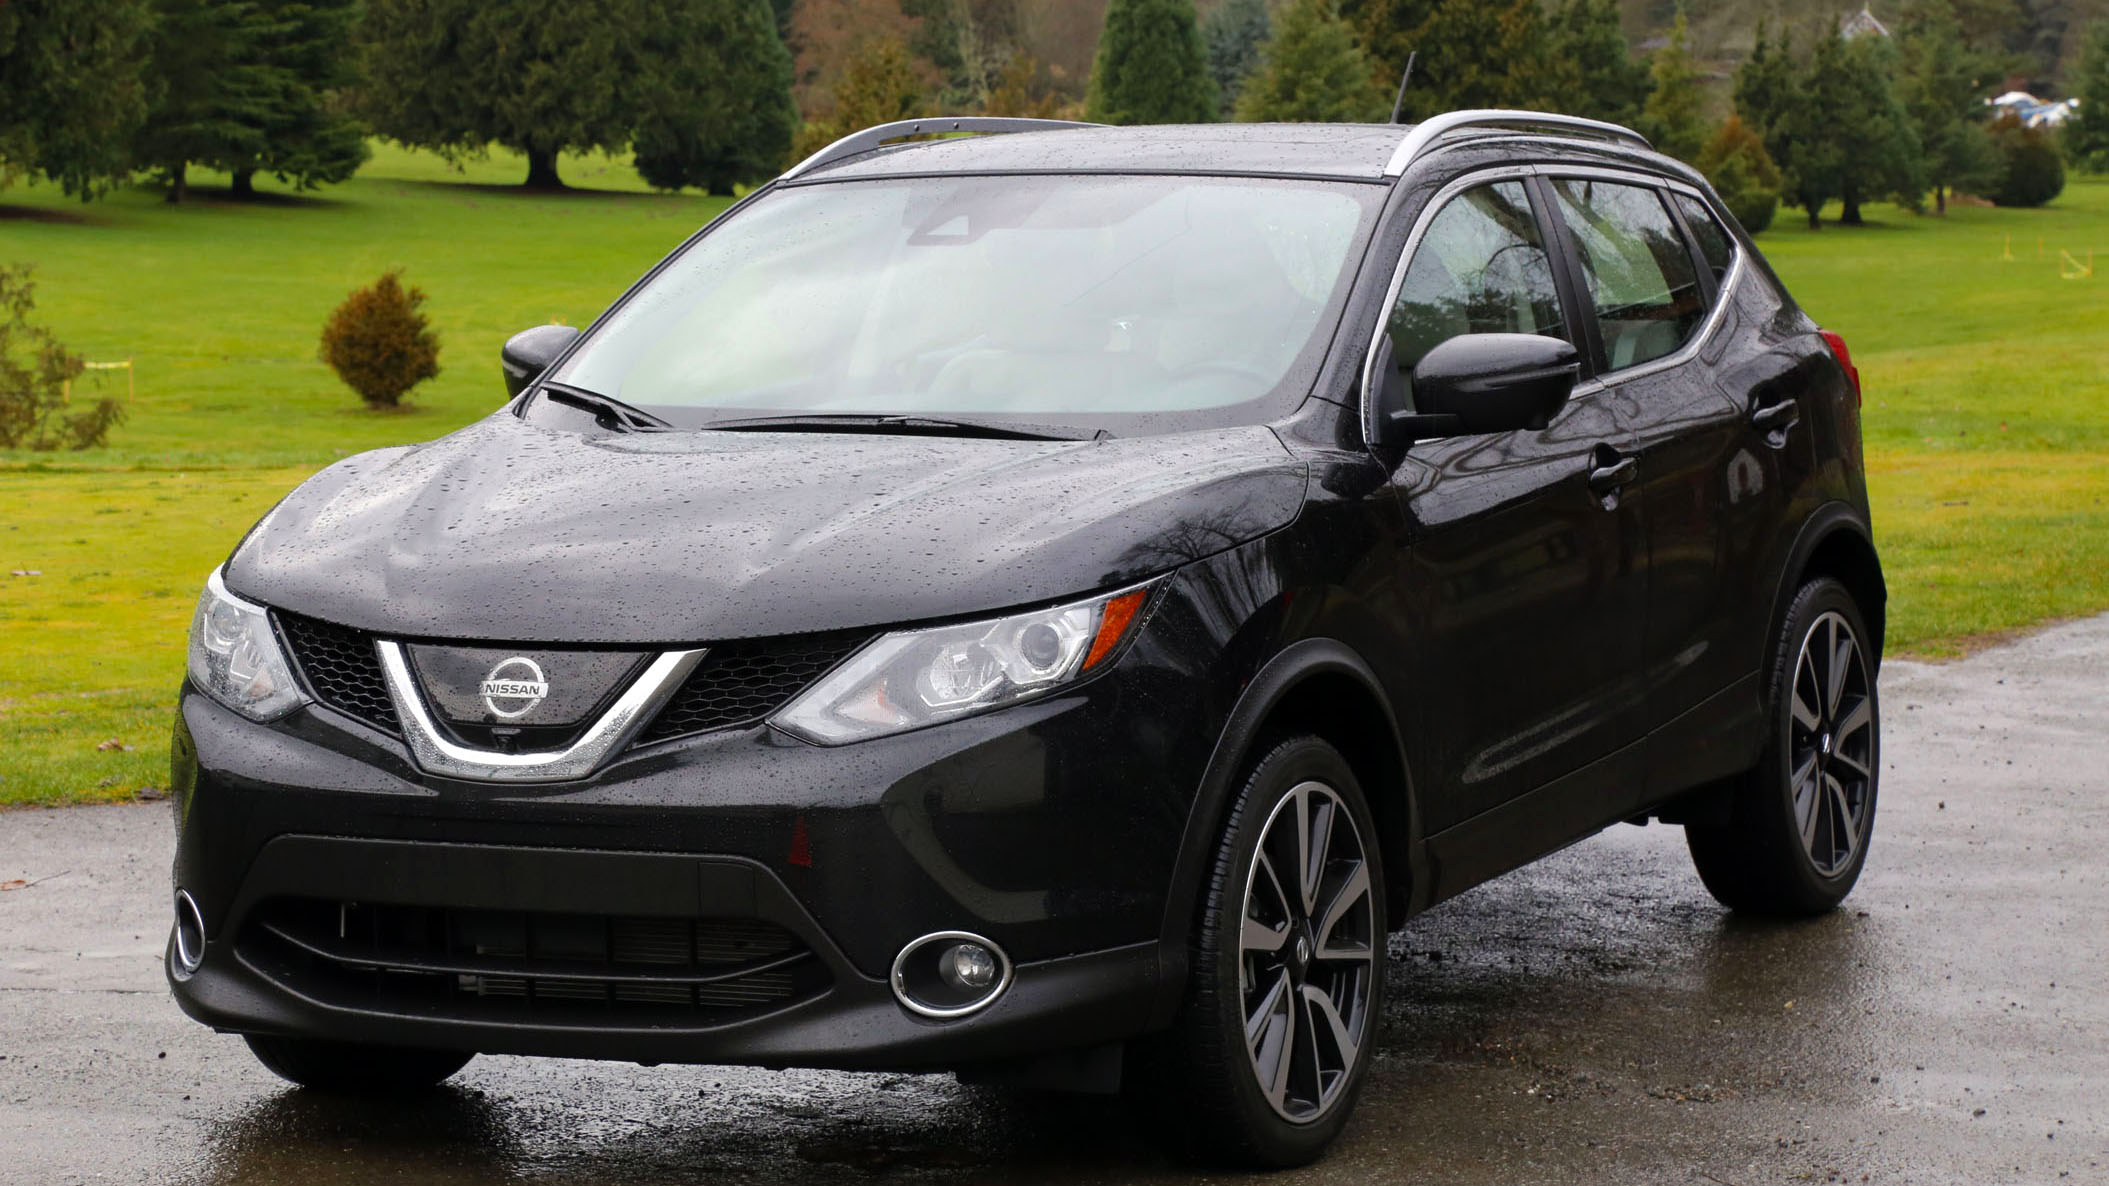 Tags:2009 Nissan Rogue For Sale CarGurus,2018 Nissan Pathfinder SUV Pricing  For Sale Edmunds,2009 Nissan Murano Reviews And Rating Motor Trend,Nissan  Rogue ...